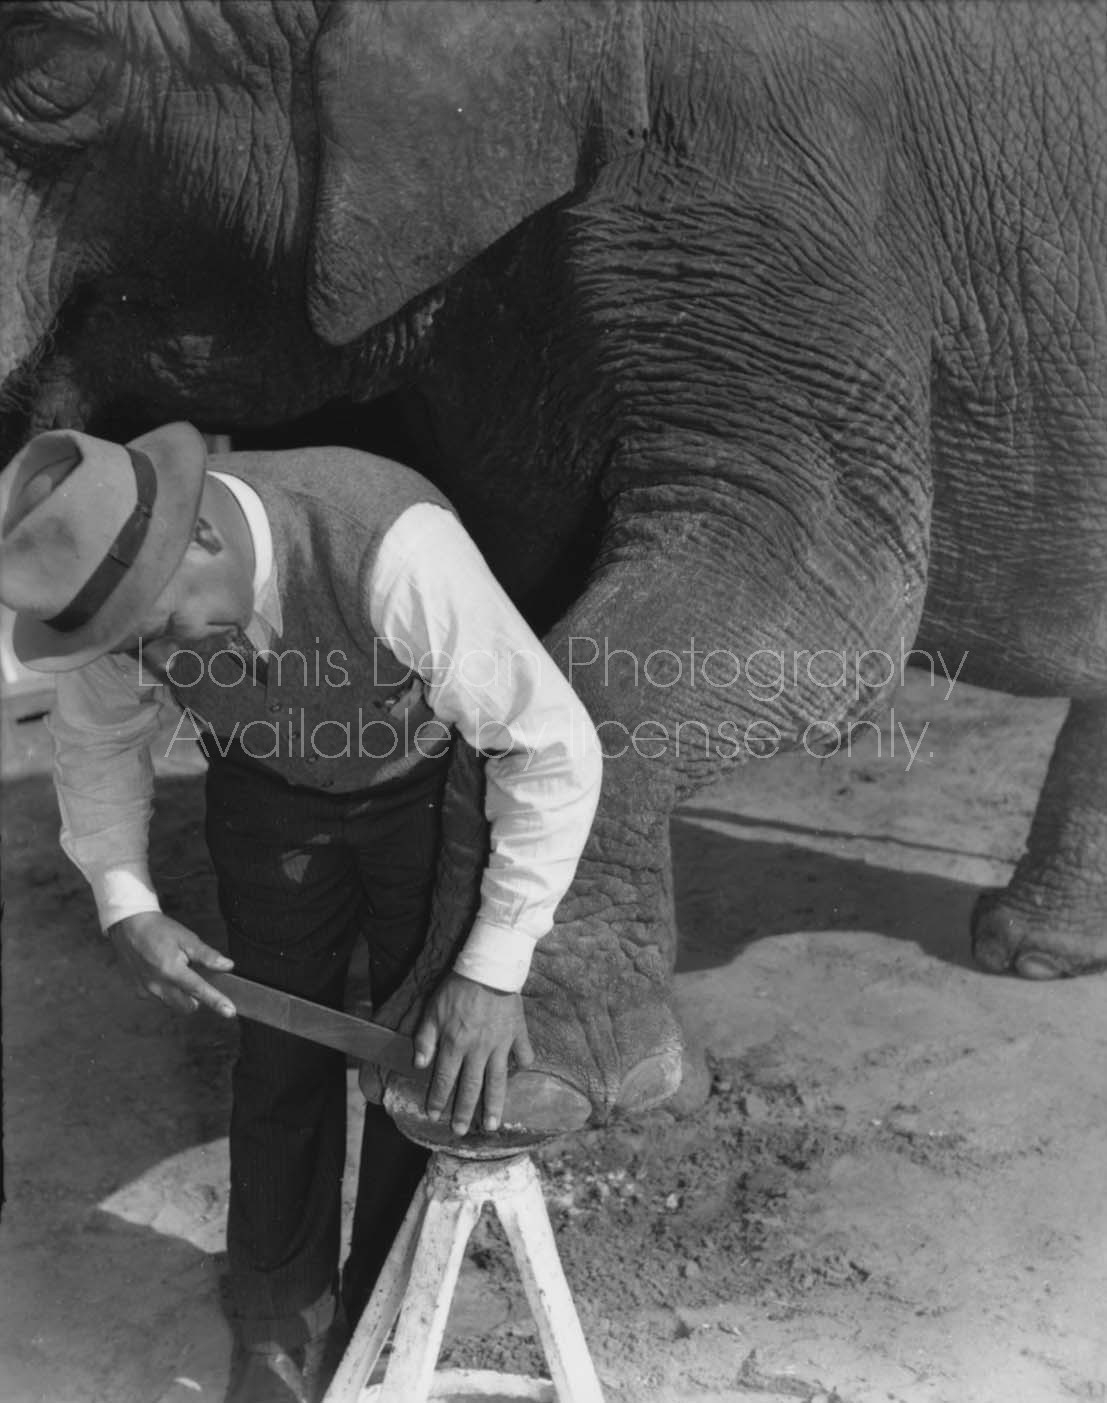 RINGLING CIRCUS ELEPHANT PEDICURE